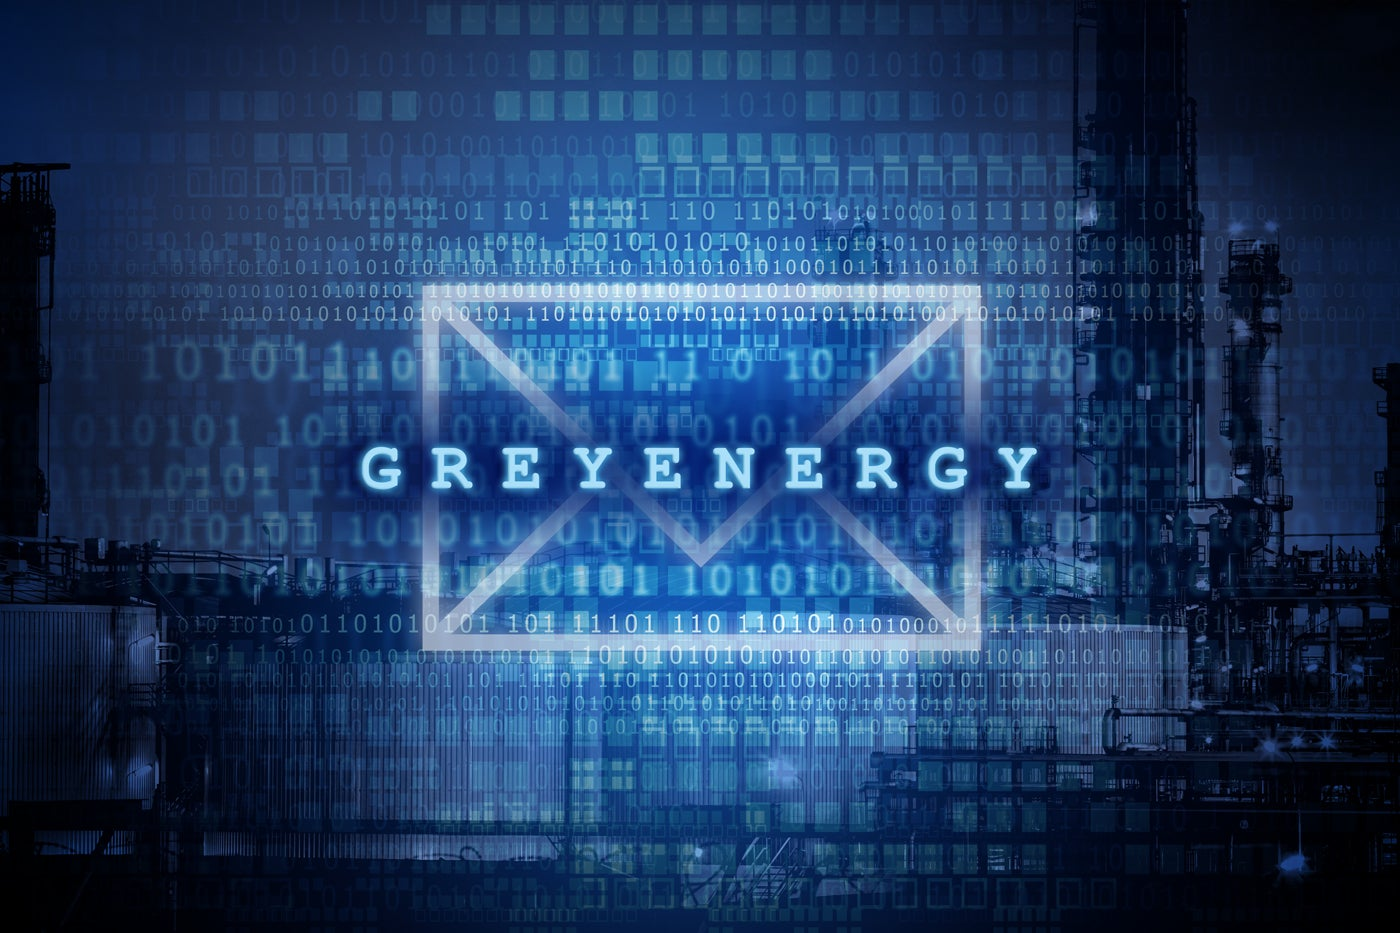 GreyEnergy-Research-Paper-Maldoc-to-Backdoor-Stages